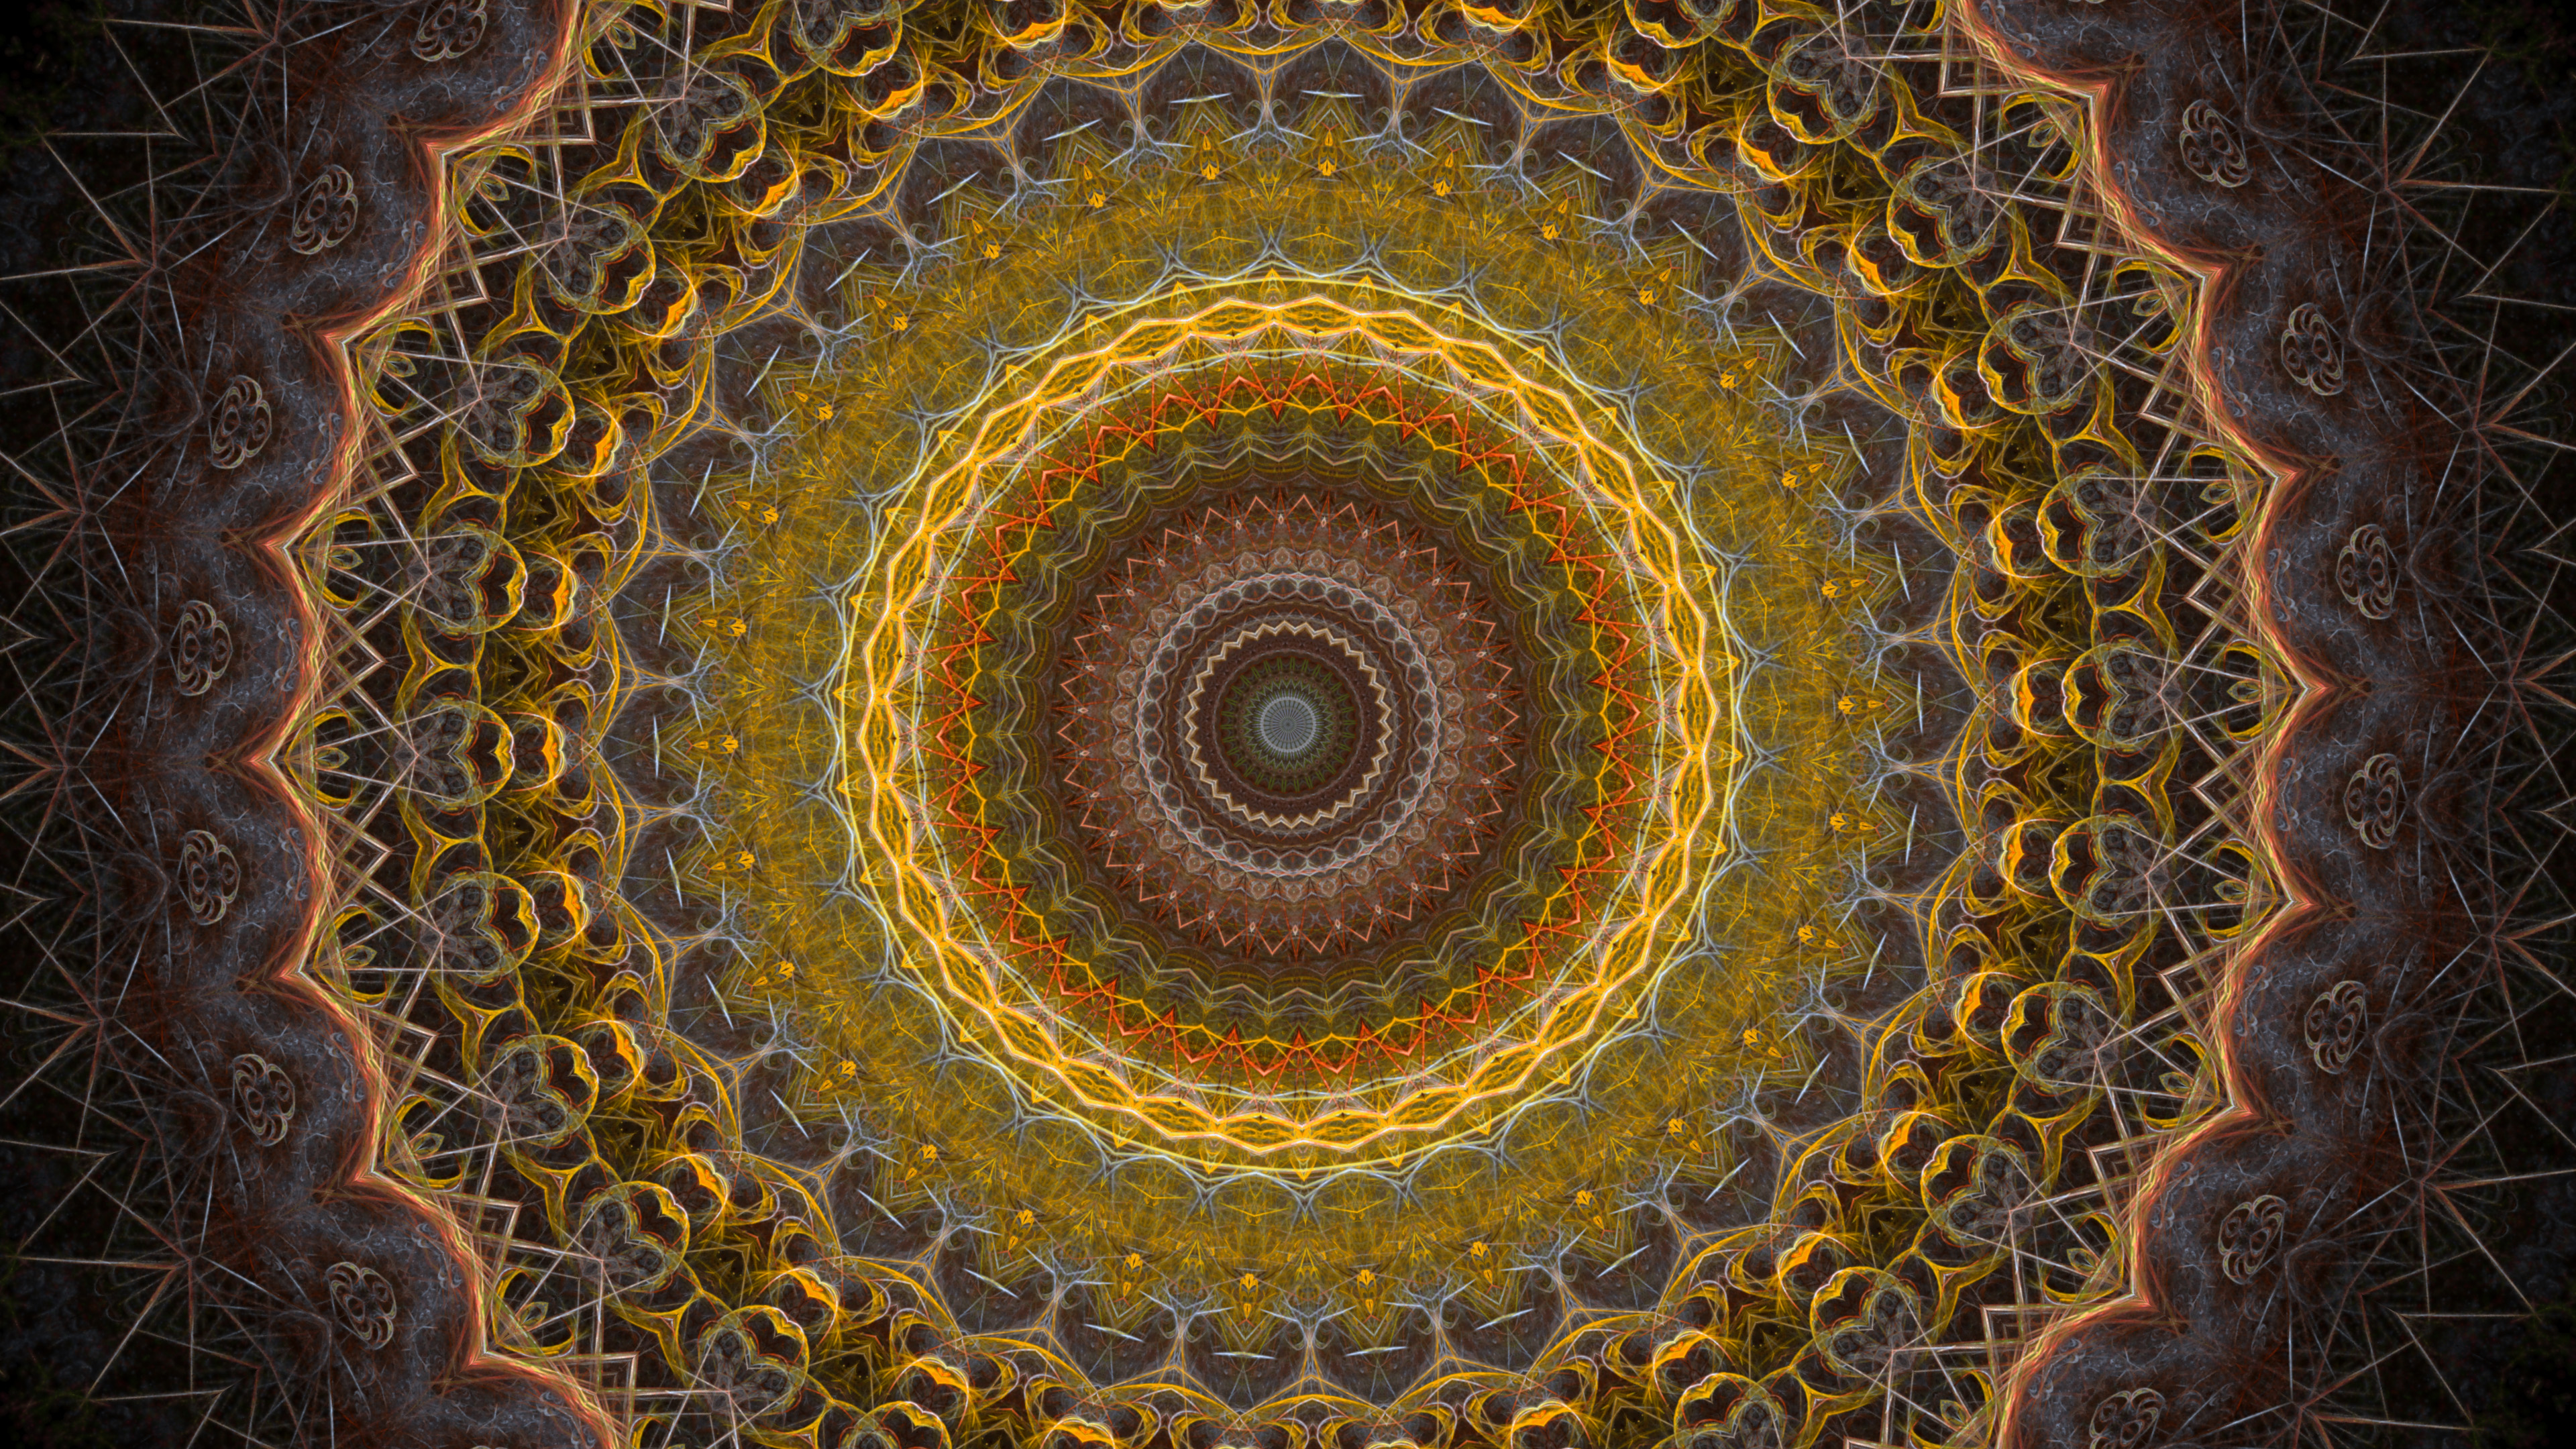 Gold Color Radial Kaleidoscope from Fractal Flame Image 4K Thumbnail